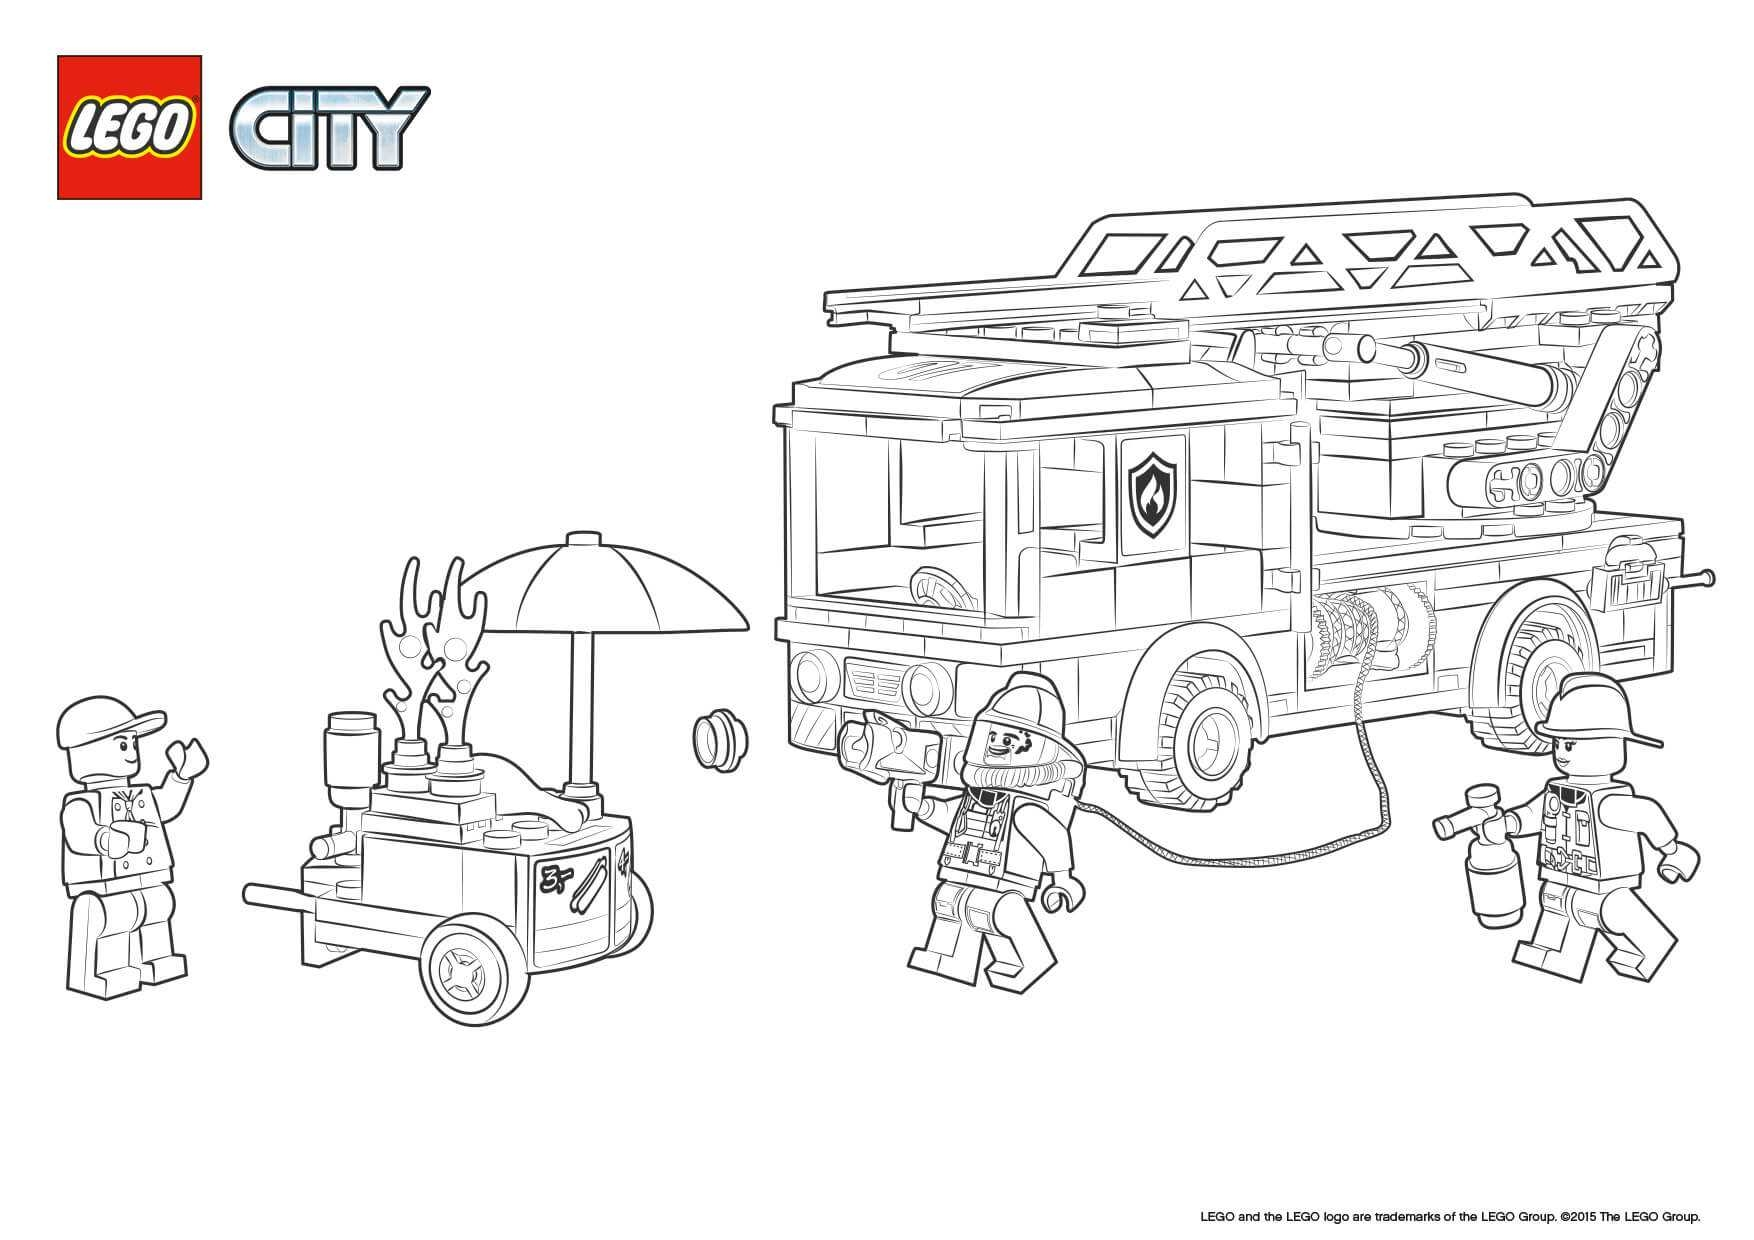 lego city coloring pages - colour in lego city fire truck